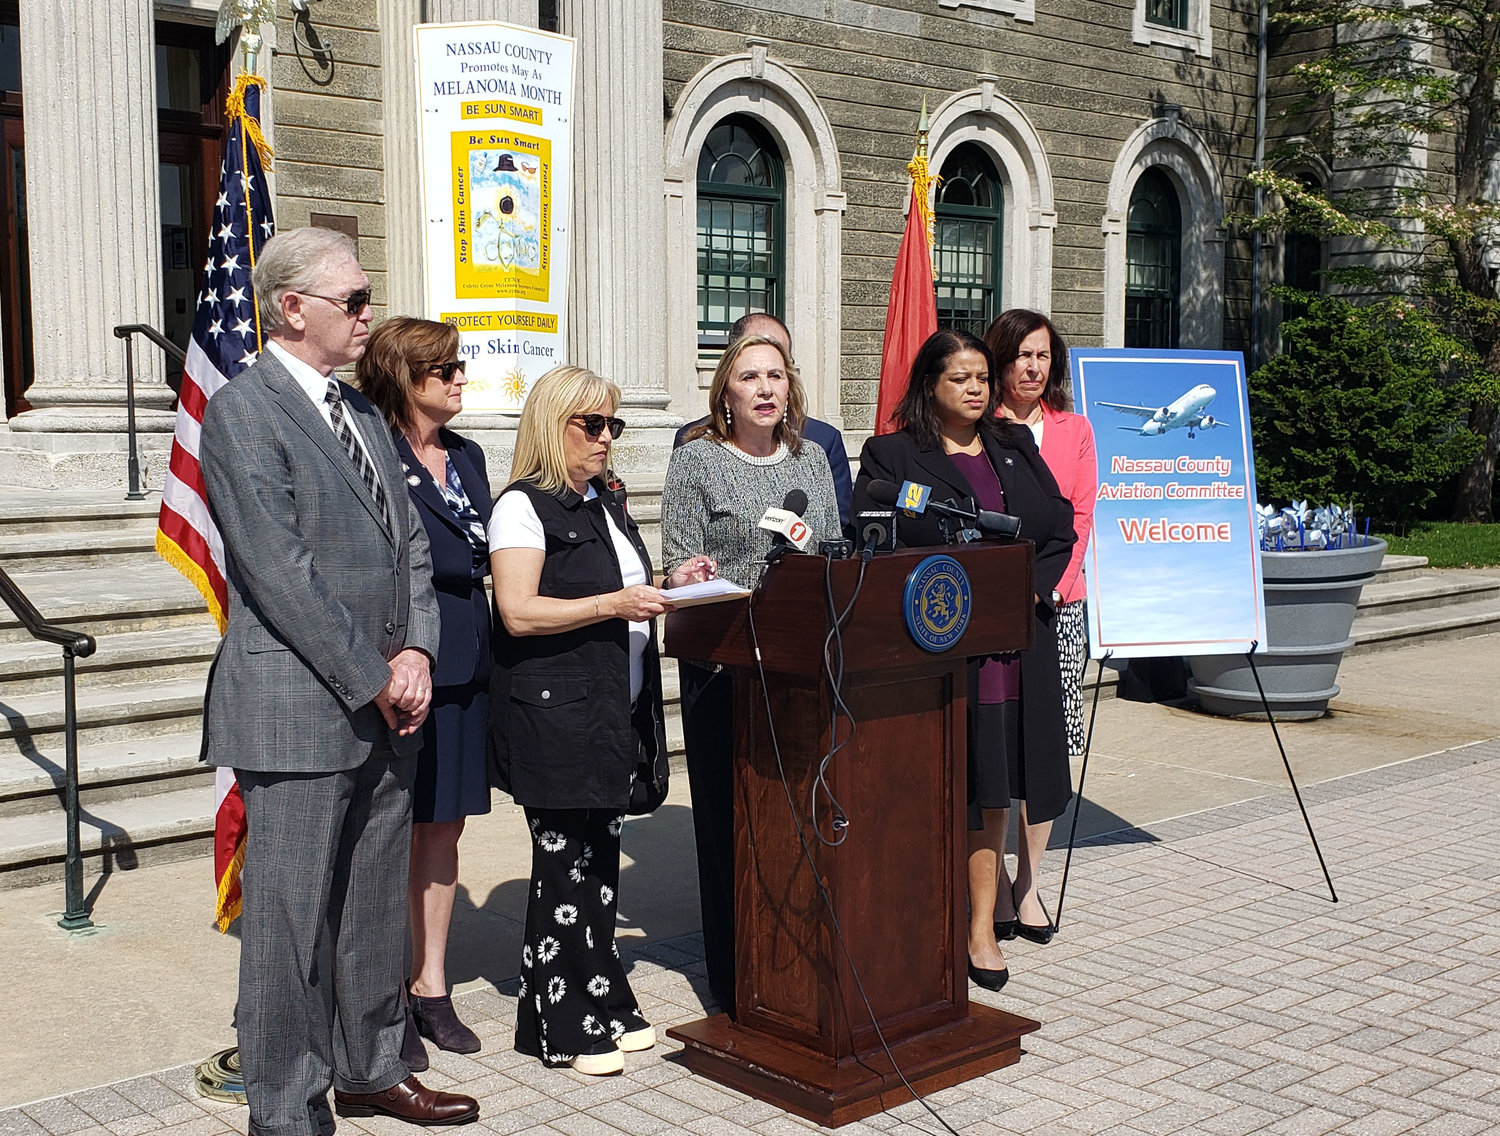 Malvernite Elaine Miller, a co-founder of the newly formed Nassau County Aviation Committee, at lectern, spoke about the negative impact of jet noise at a news conference on May 17.